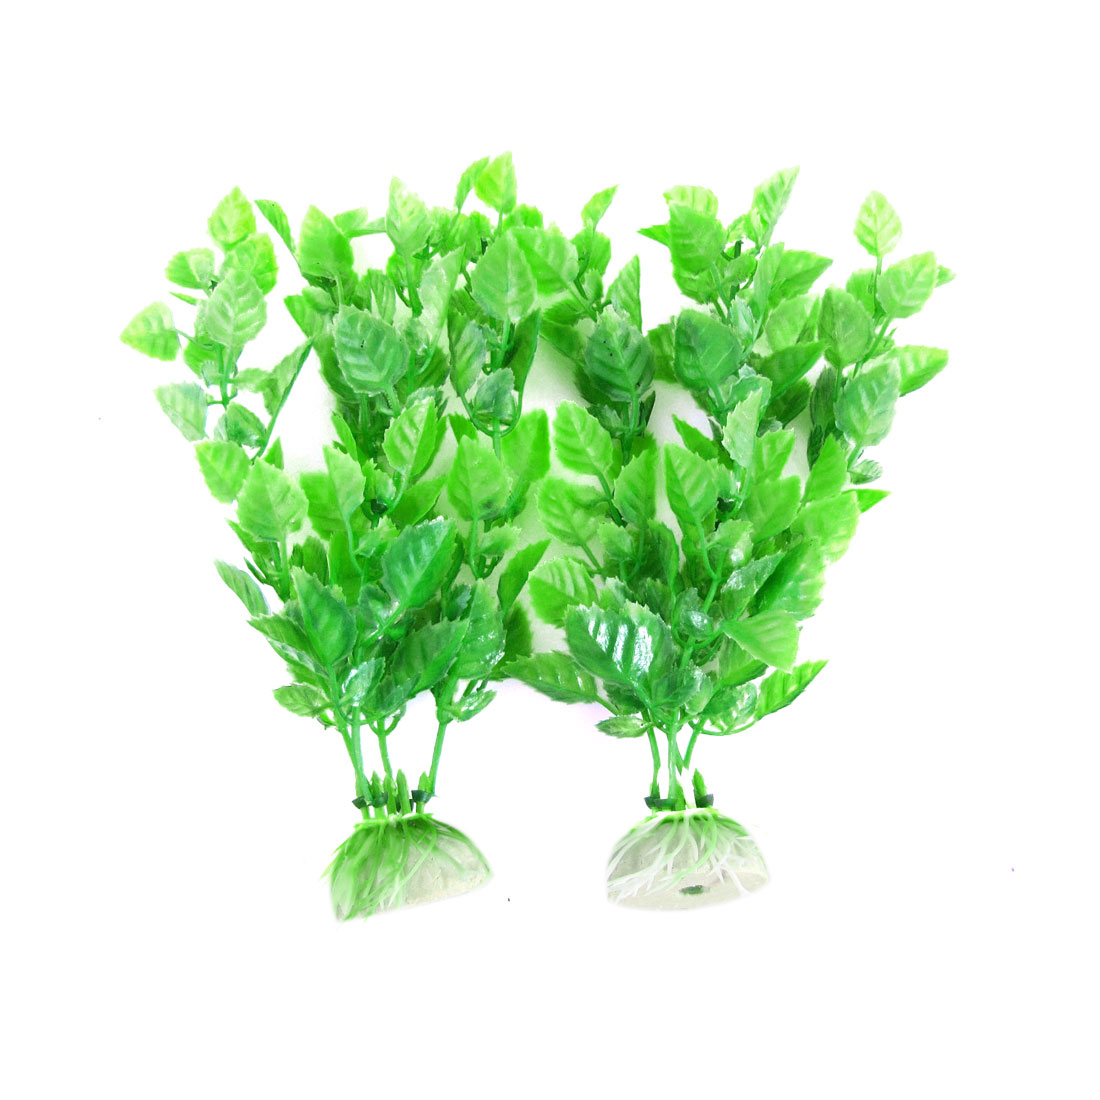 2 Pcs Green Plastic Artificial Water Plants for Aquarium Decor